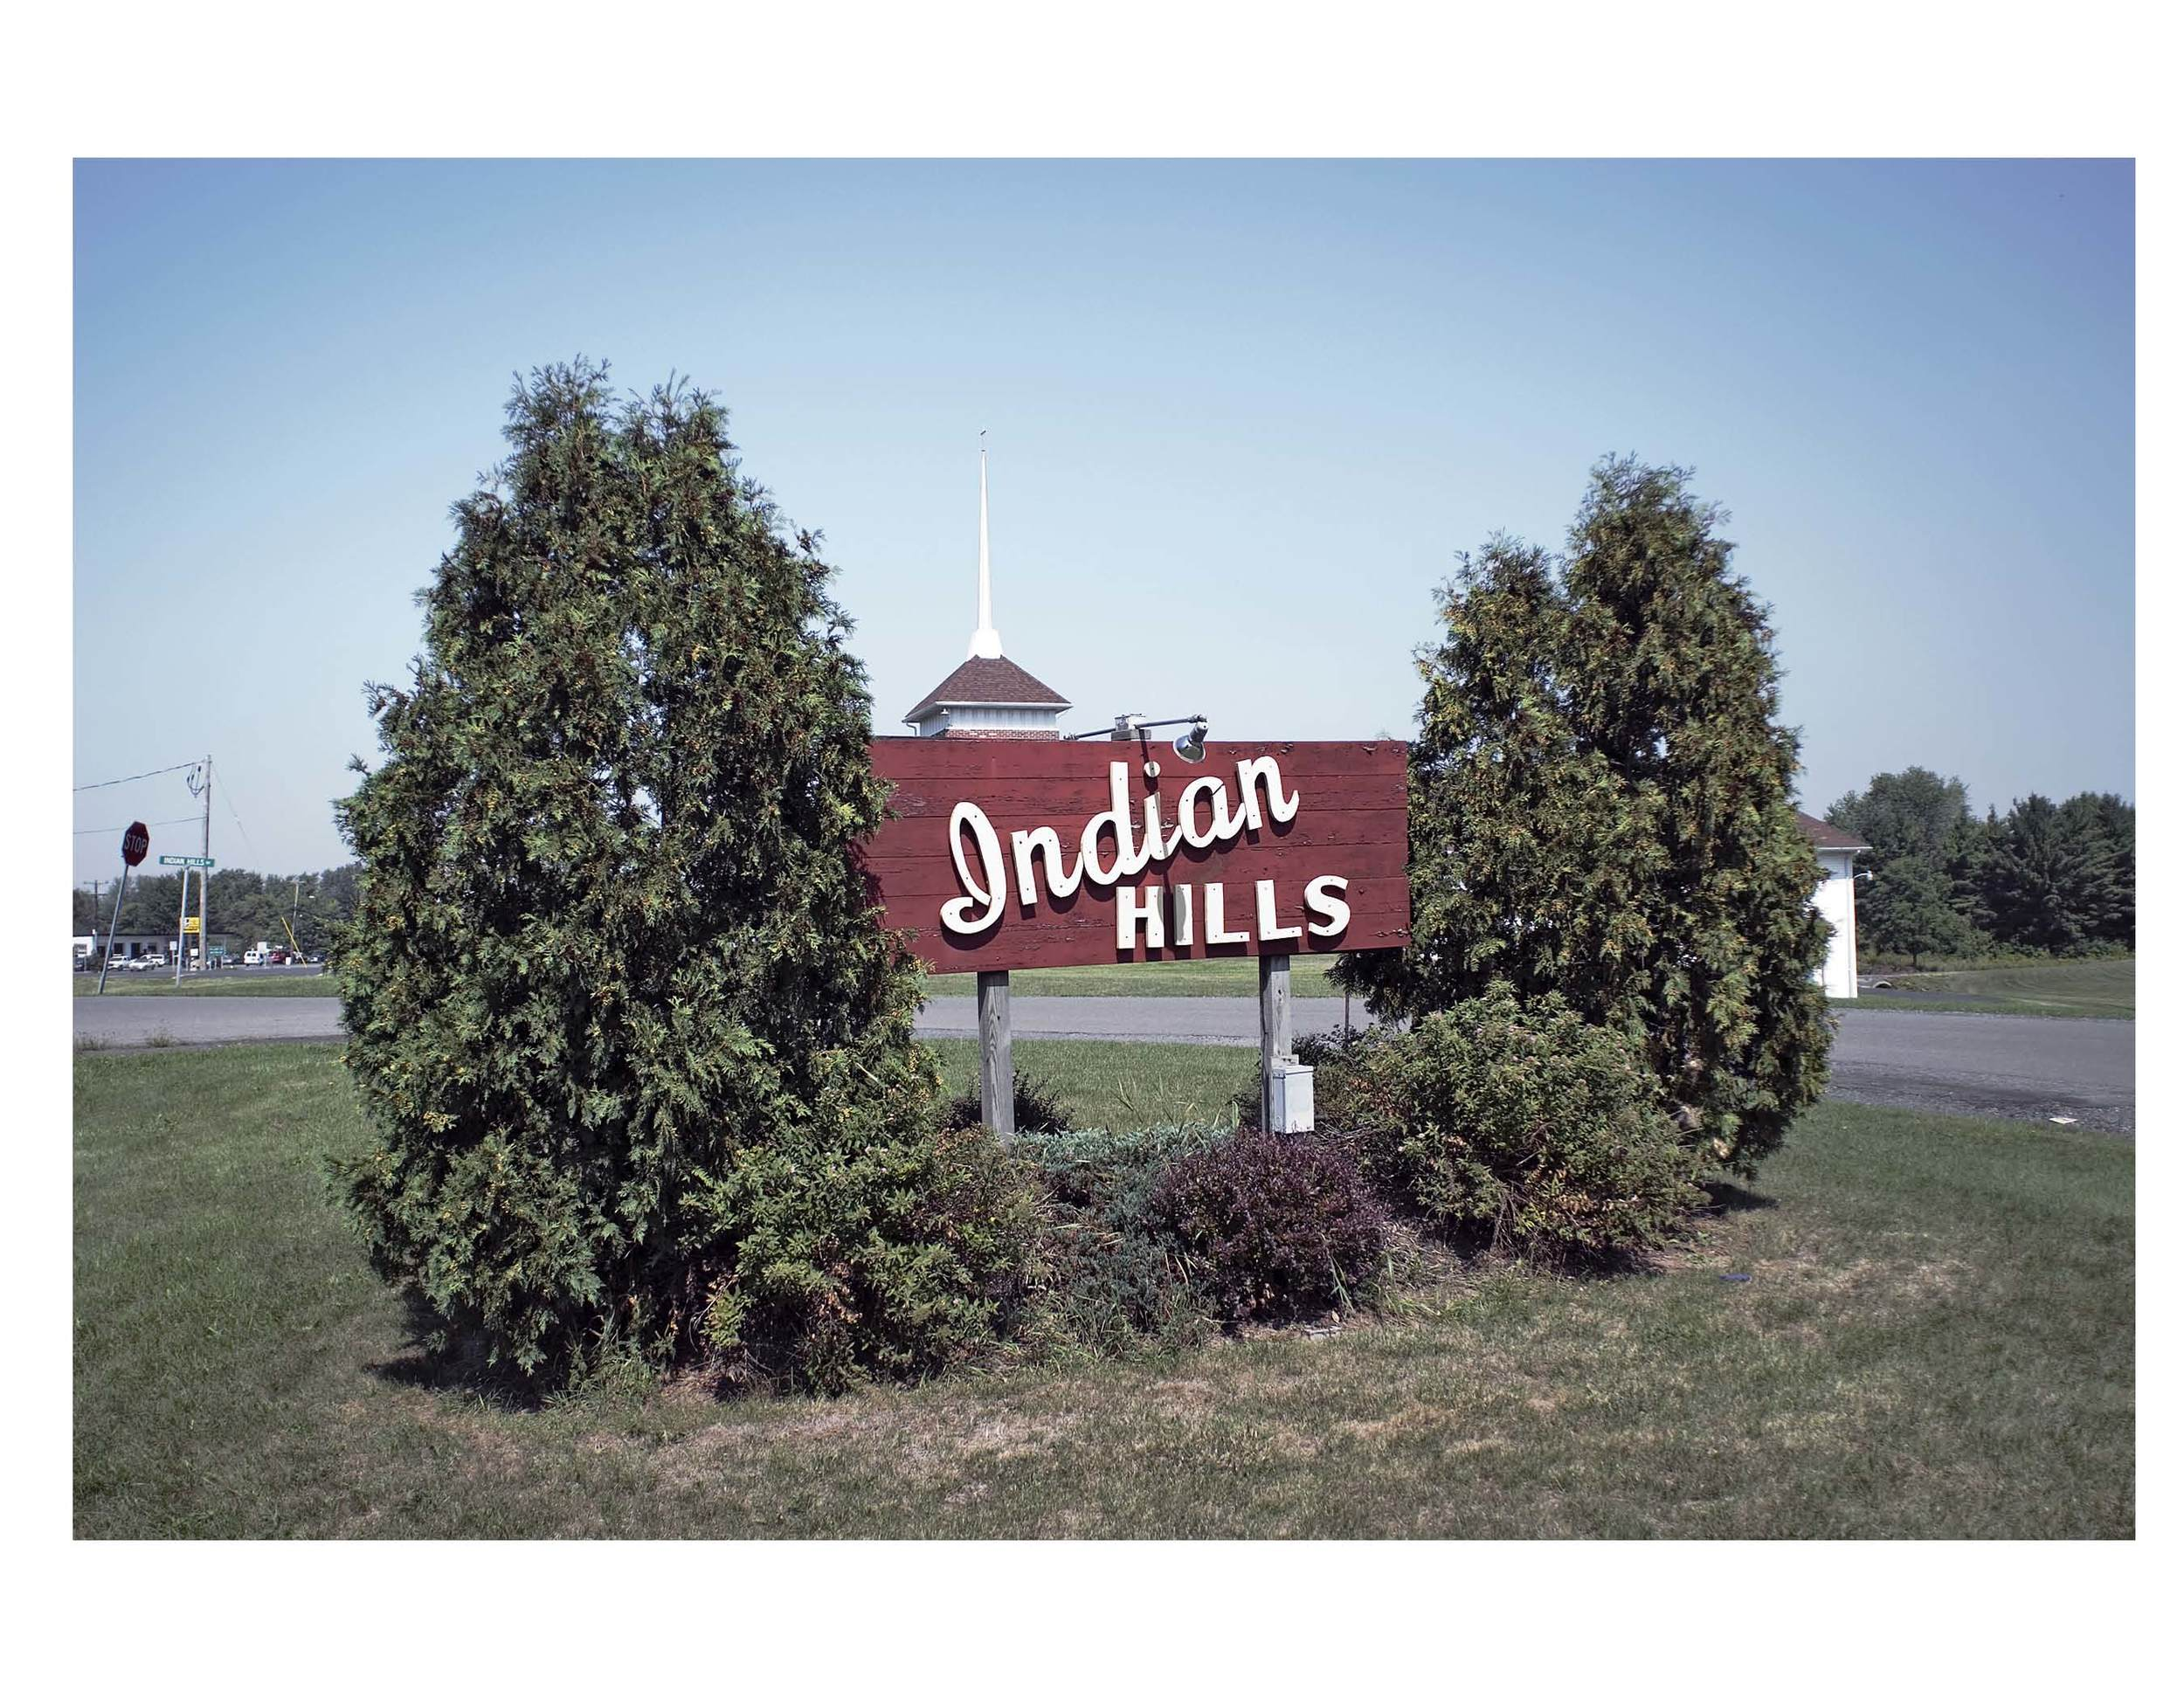 Indian Hills  | Iroquoia, 2007